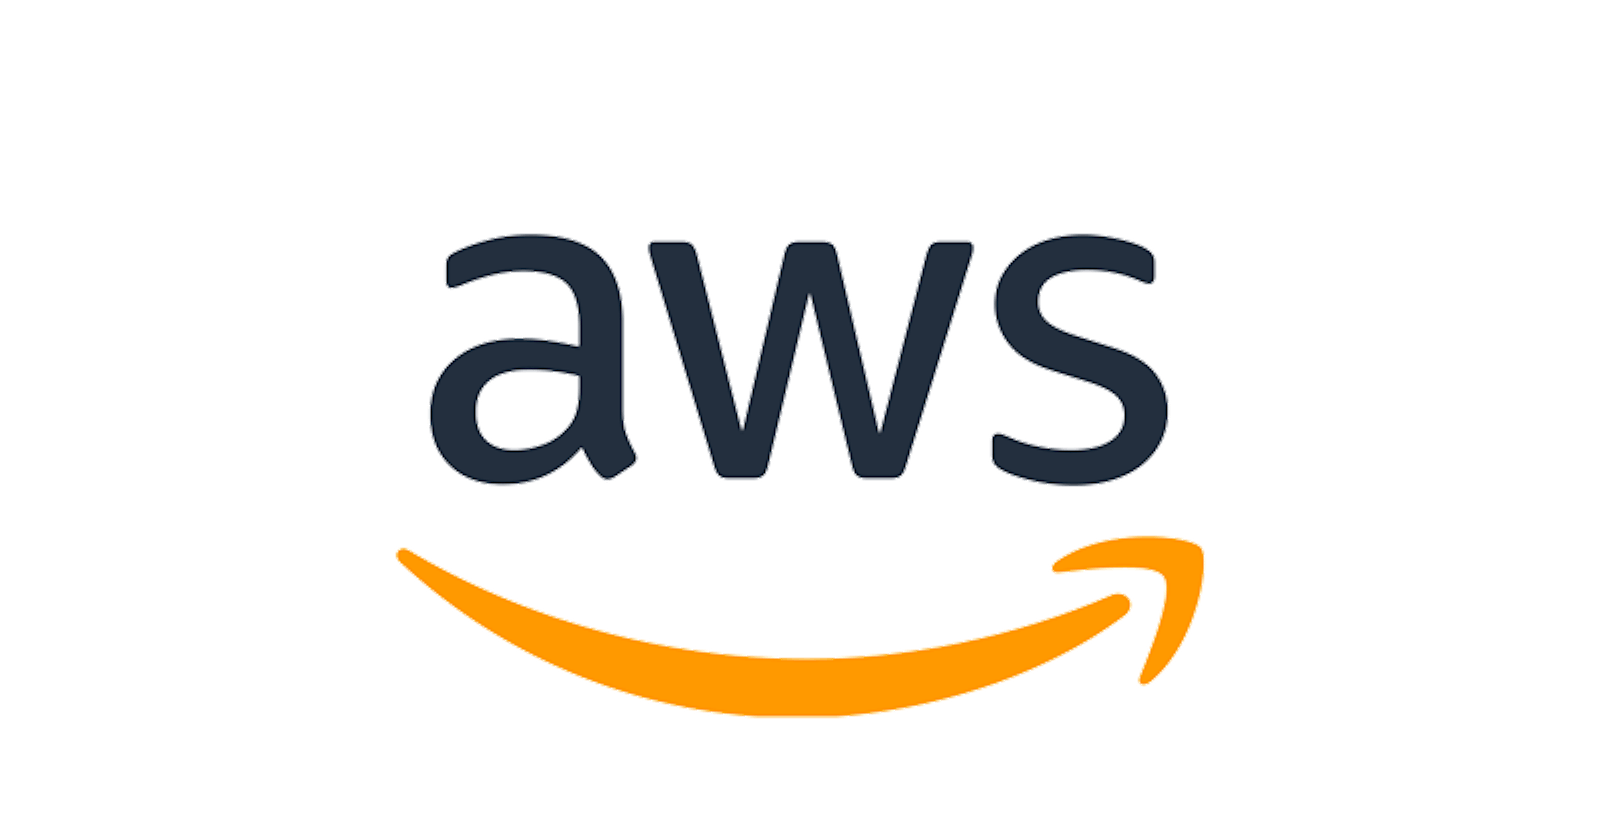 Using AWS CodeDeploy to Auto Deploy Code to EC2